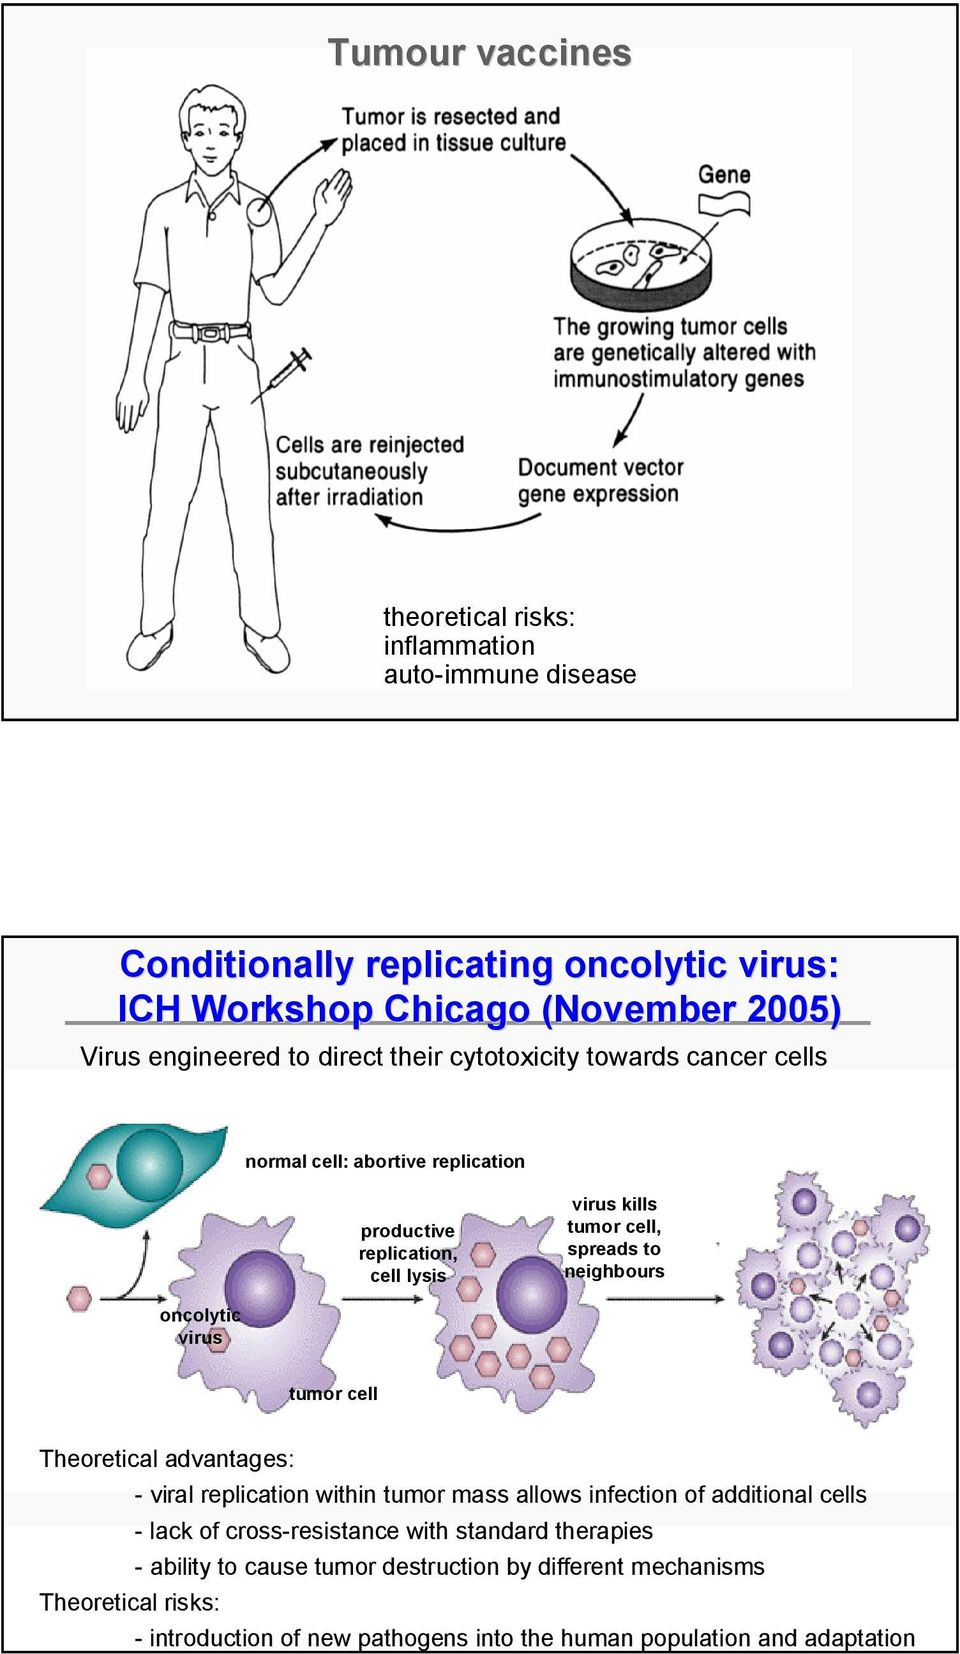 oncolytic virus tumor cell Theoretical advantages: - viral replication within tumor mass allows infection of additional cells - lack of cross-resistance with